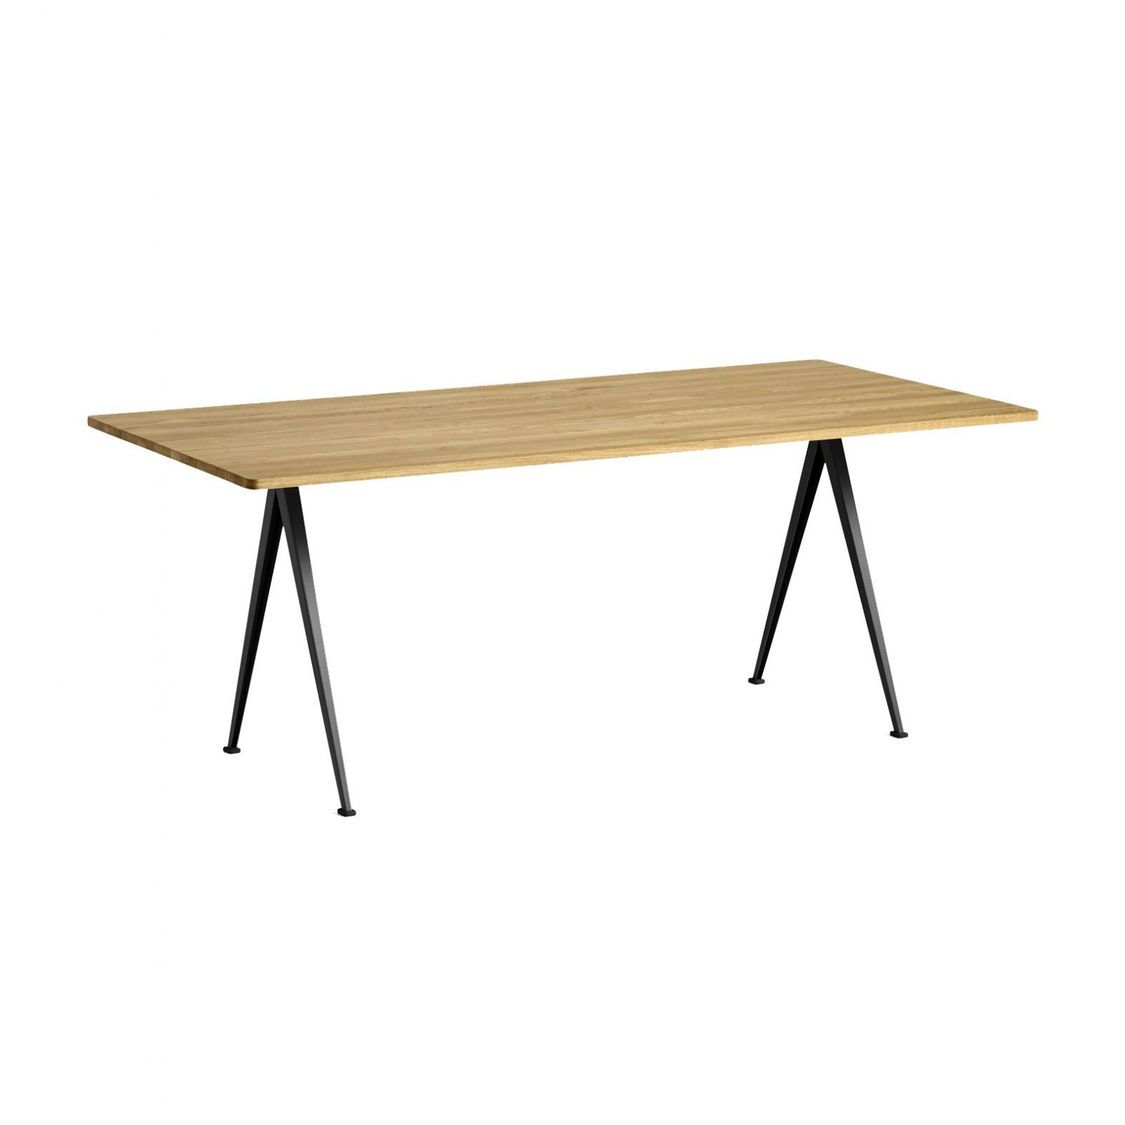 Hay pyramid table 02 table 190x85cm hay for Table th 00 02